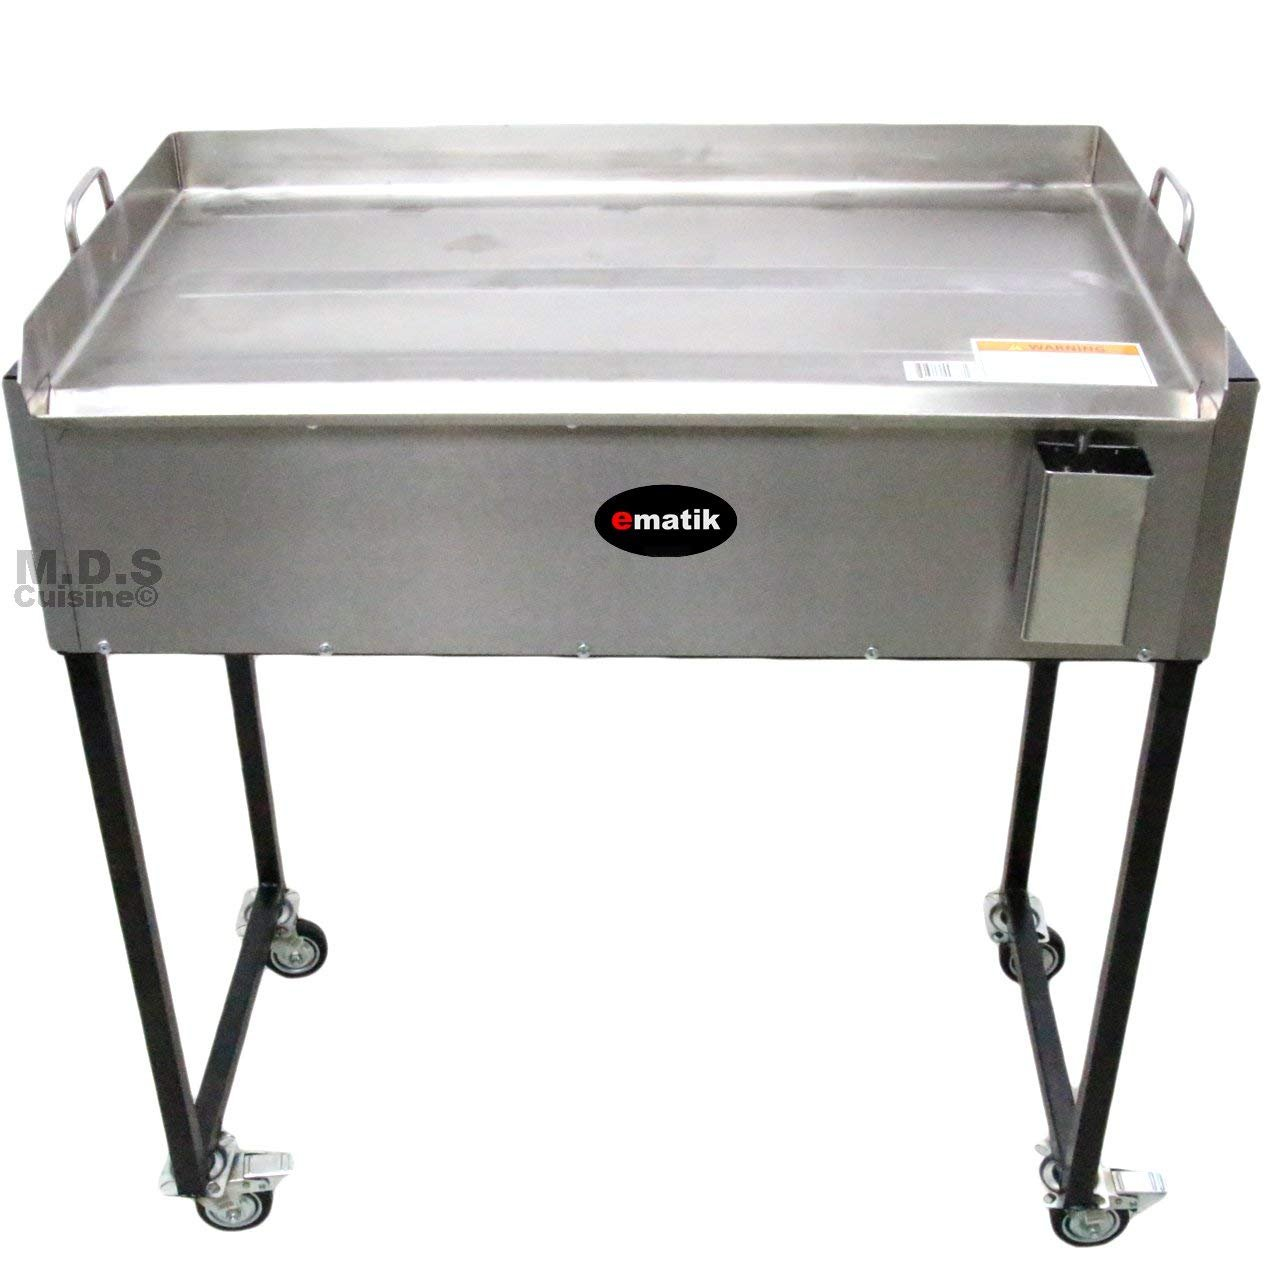 Ematik Griddle 31� 100% Heavy Duty Gauge Steel Stainless Steel Catering Grill Camping Tailgate Taco Cart... by Kitchen & Restaurant Supplies